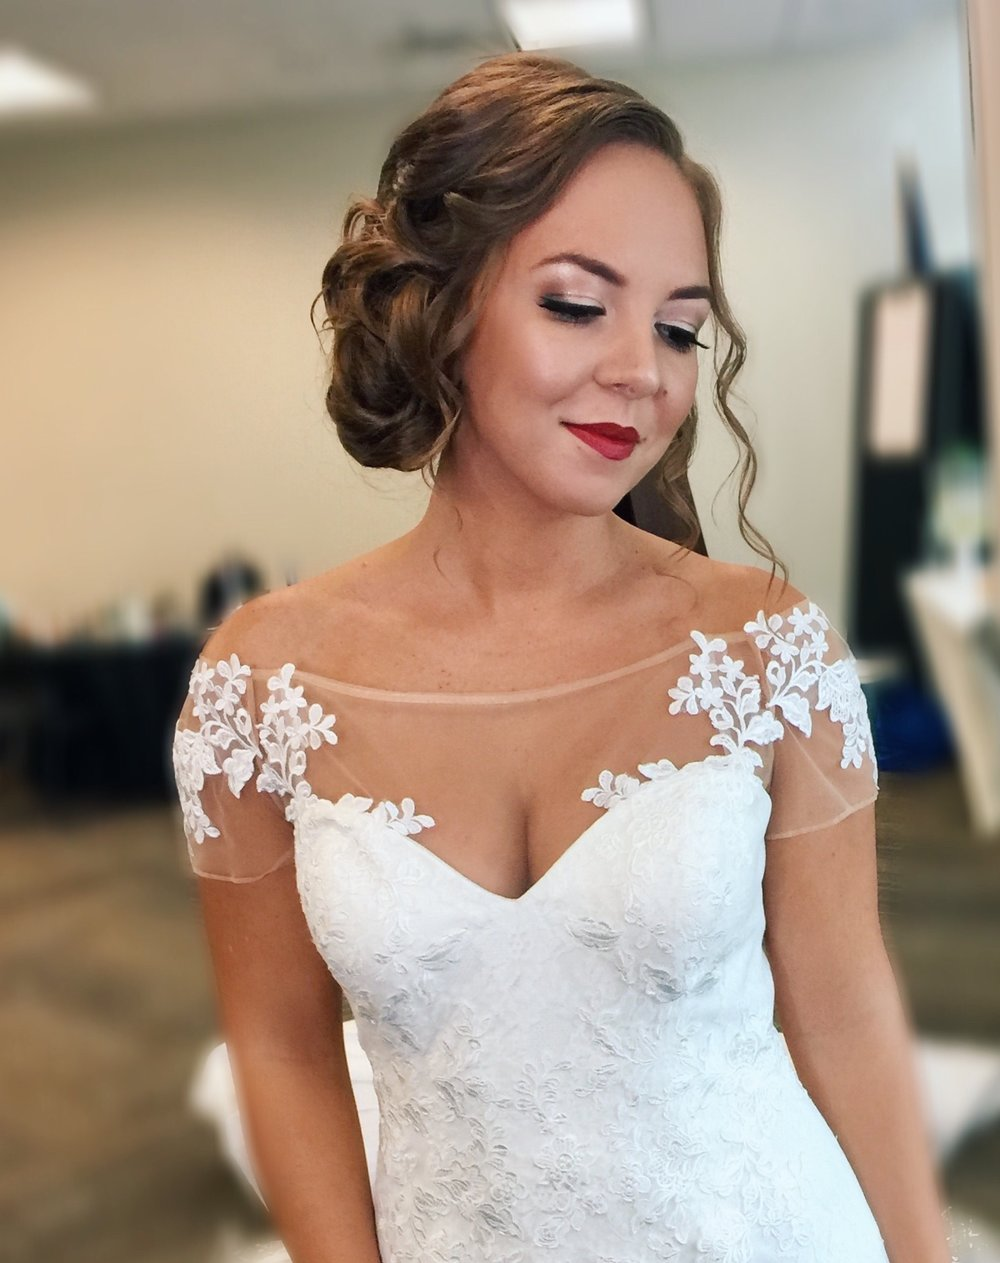 Hannah was our boho bride, but we couldn't resist adding a little Hollywood Glam when we saw this dress!